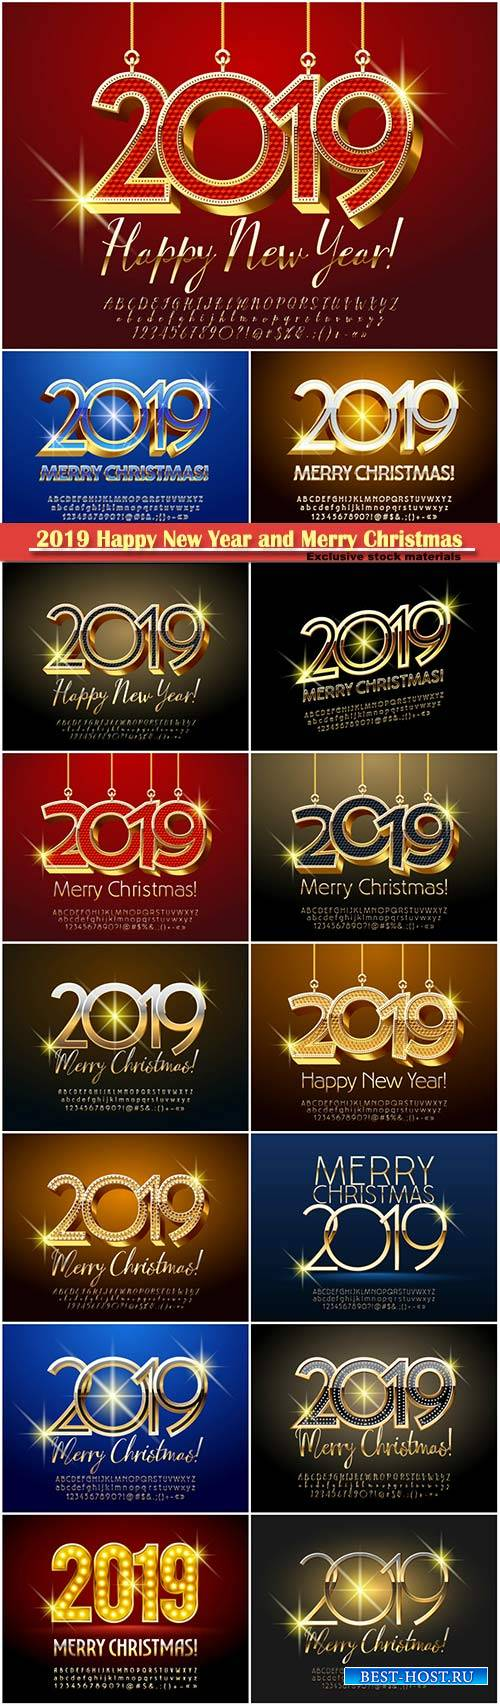 2019 Happy New Year and Merry Christmas design decorative